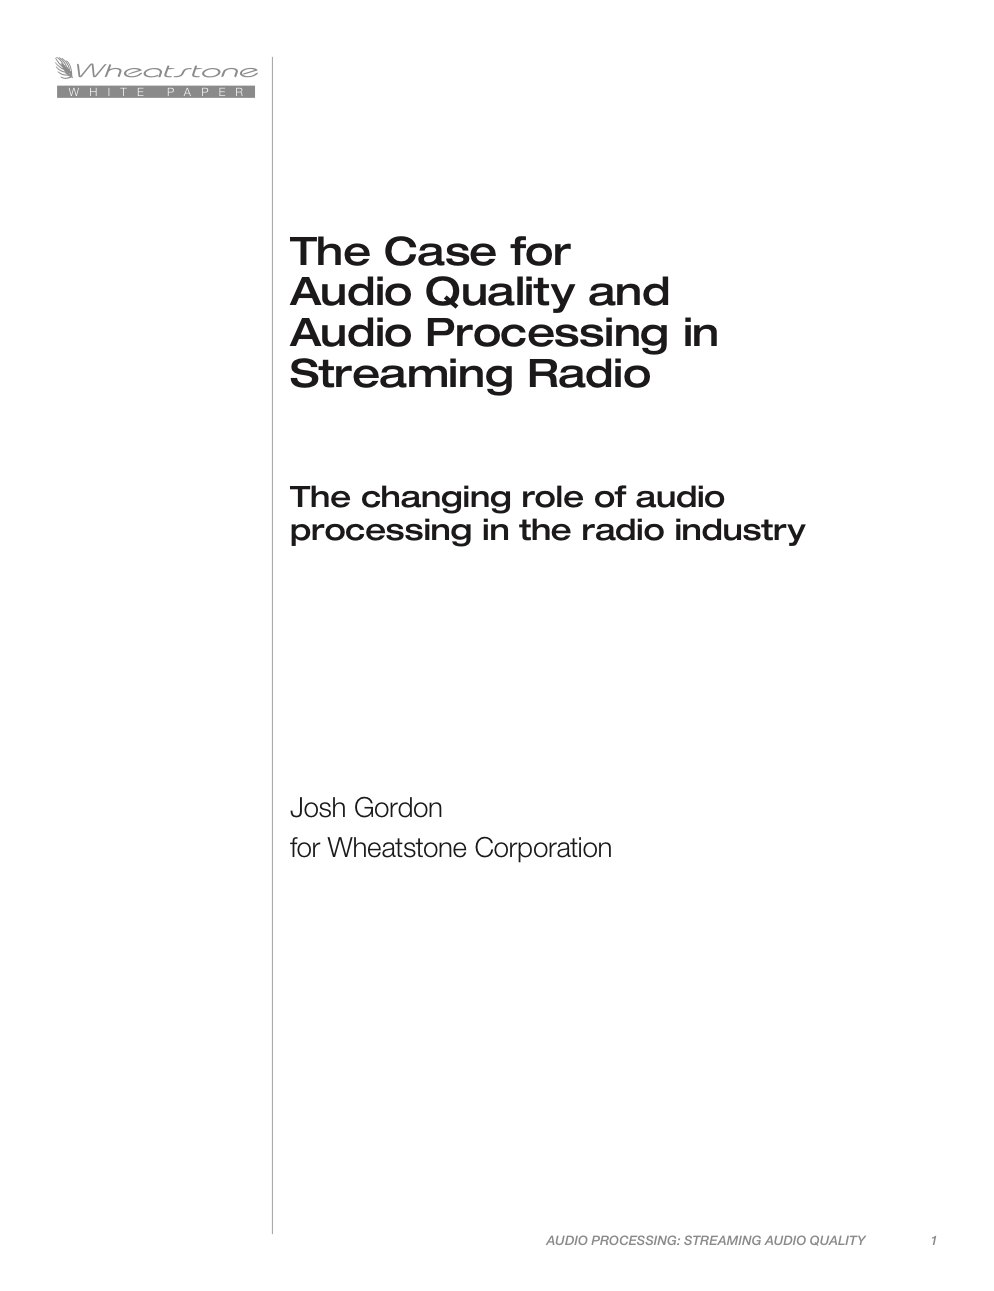 The Case for Audio Quality and Audio Processing in Streaming Radio